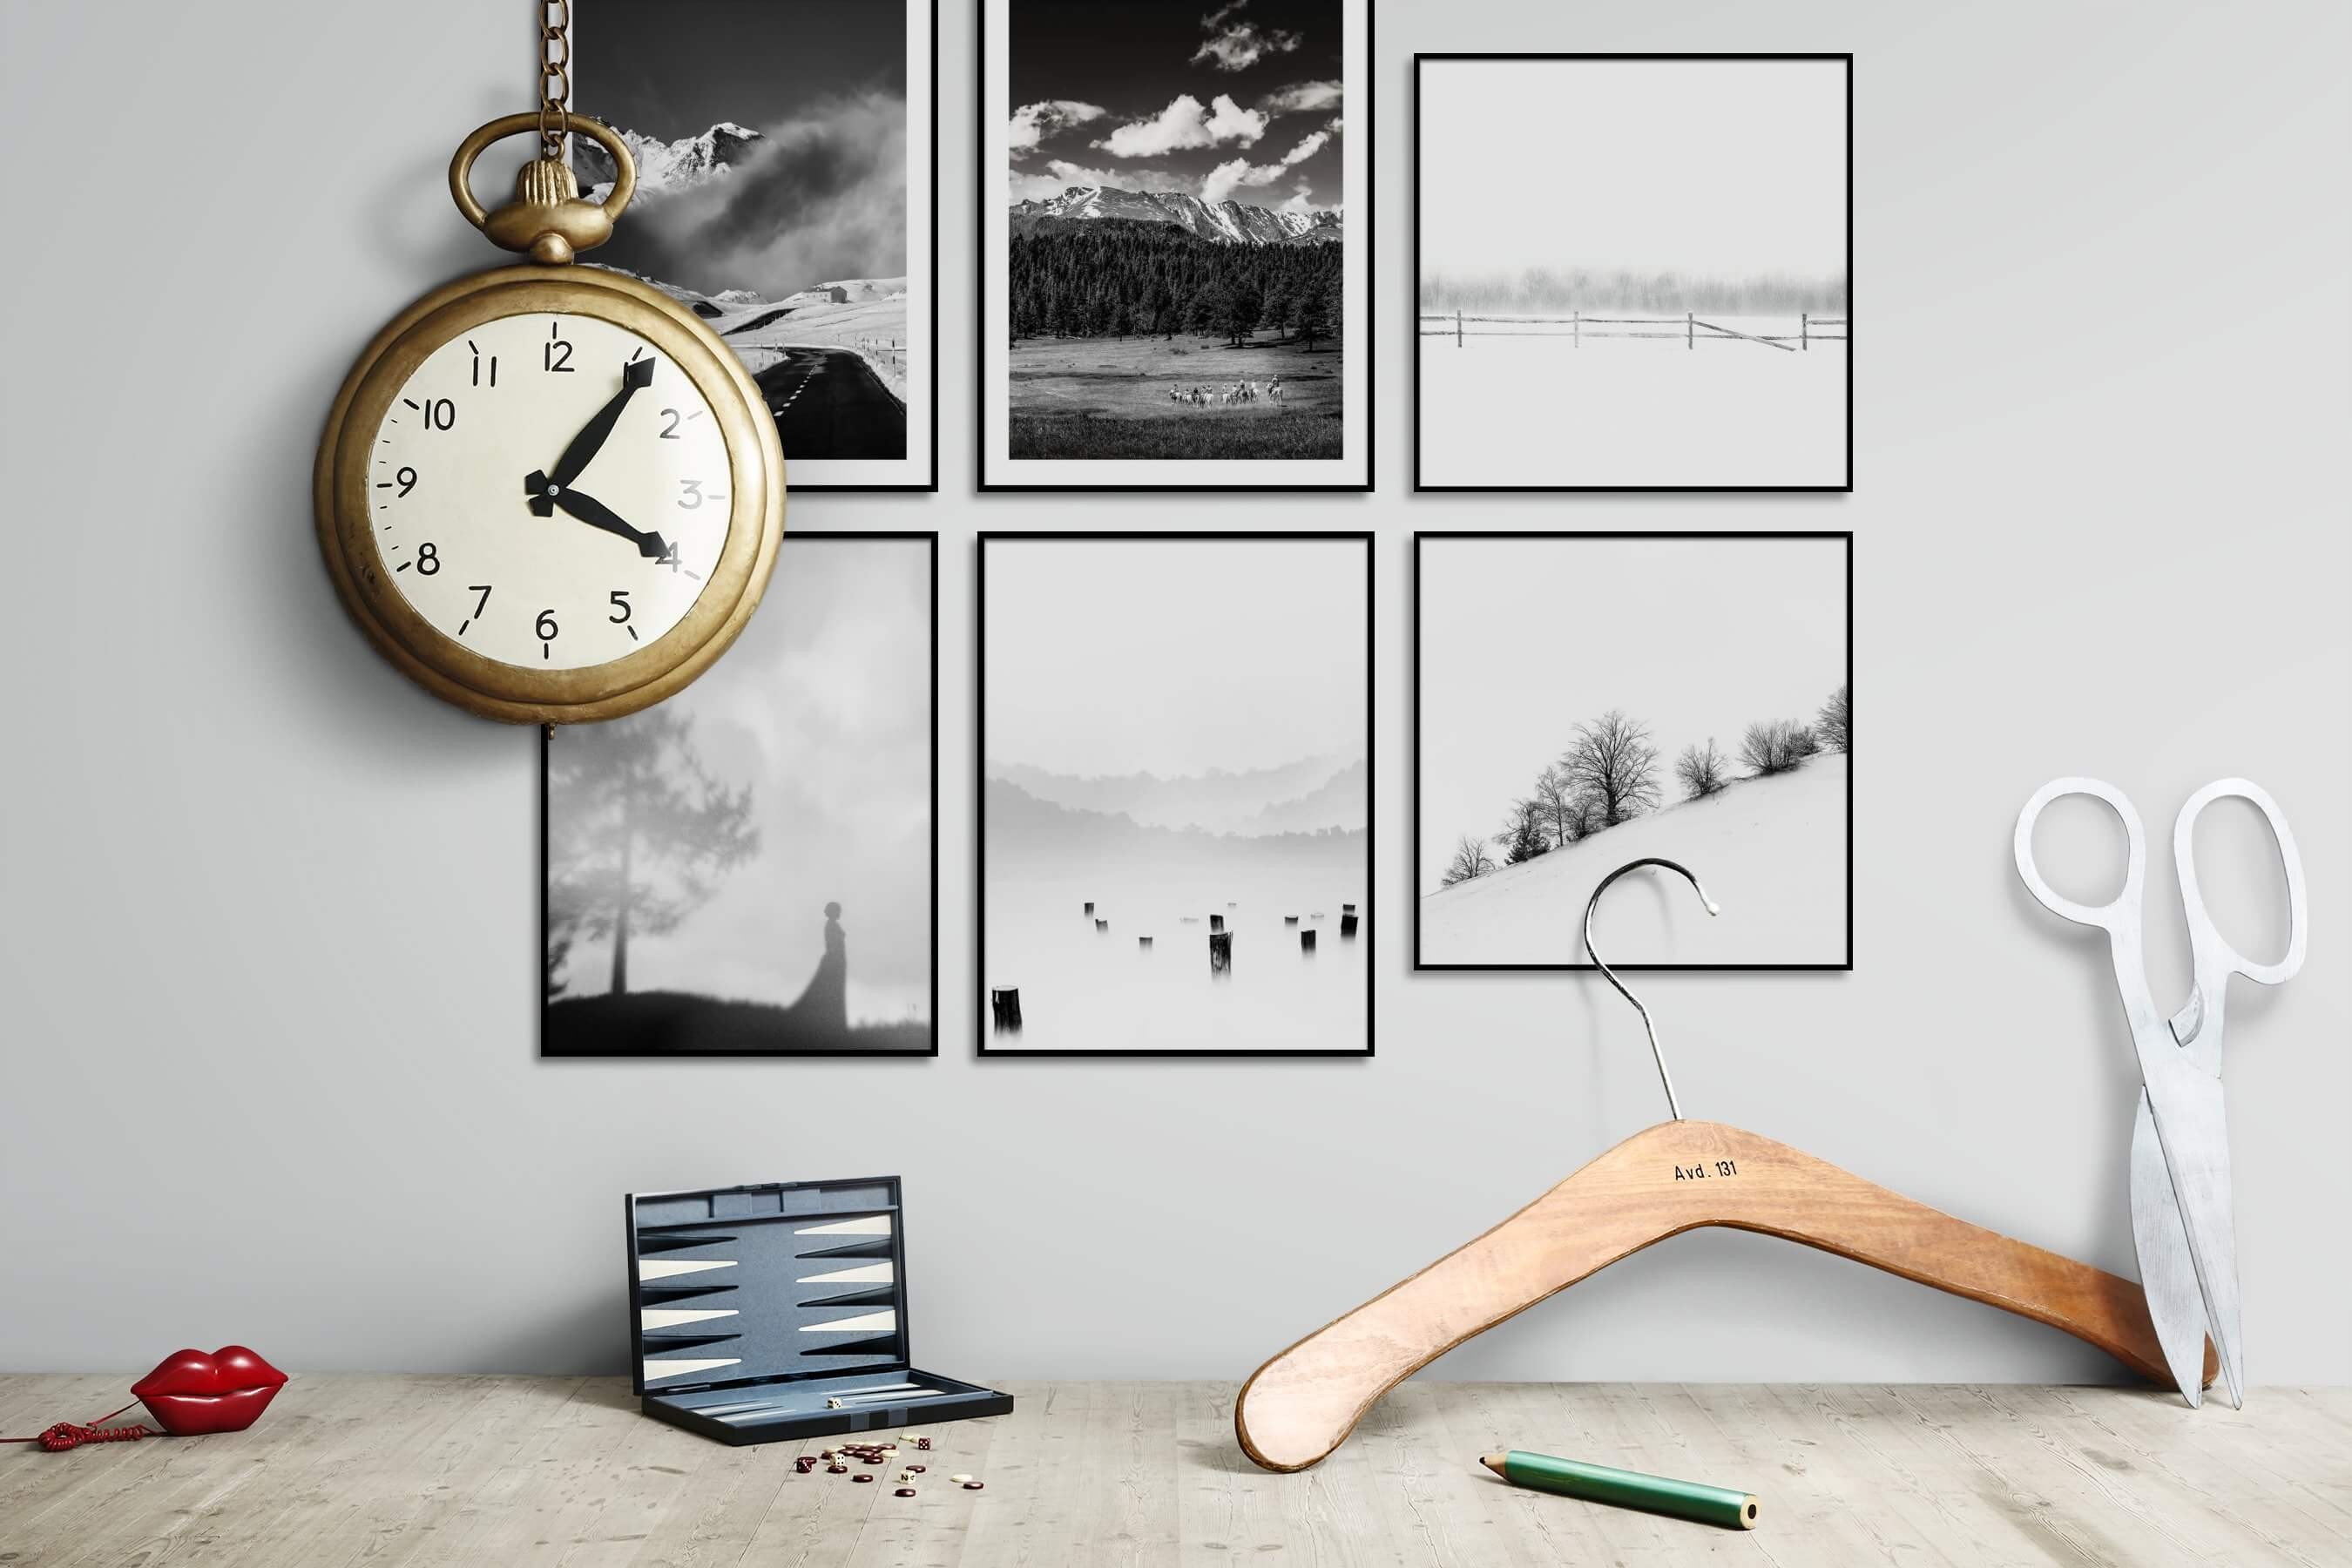 Gallery wall idea with six framed pictures arranged on a wall depicting Black & White, Country Life, Nature, Bright Tones, For the Minimalist, and Mindfulness